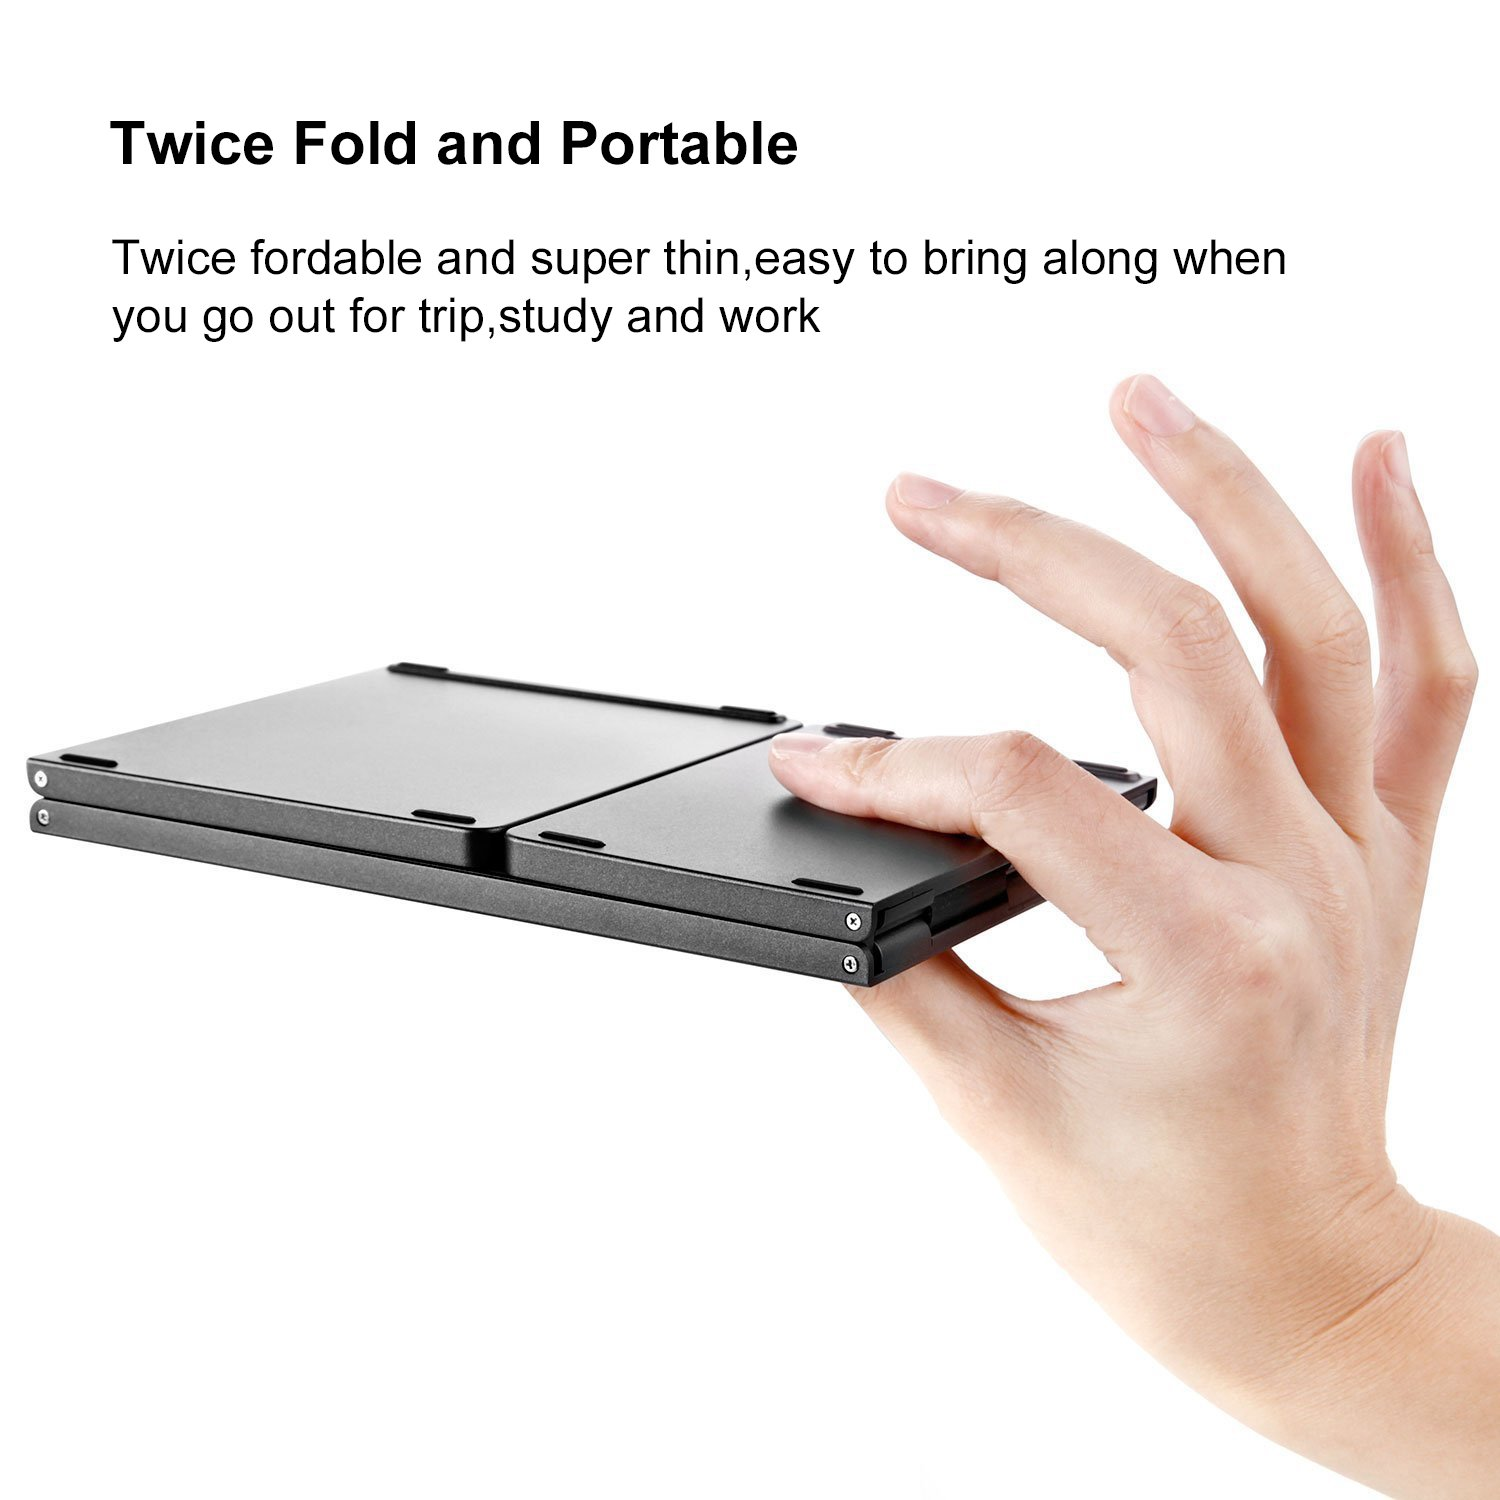 Avatto Mt03 Wireless Foldable Keyboard Bluetooth With Digital Logic Questions Answers Page 8 Touchpad Usb Rechargeable Portable For Tablet Pad Phone Smart Tv Android